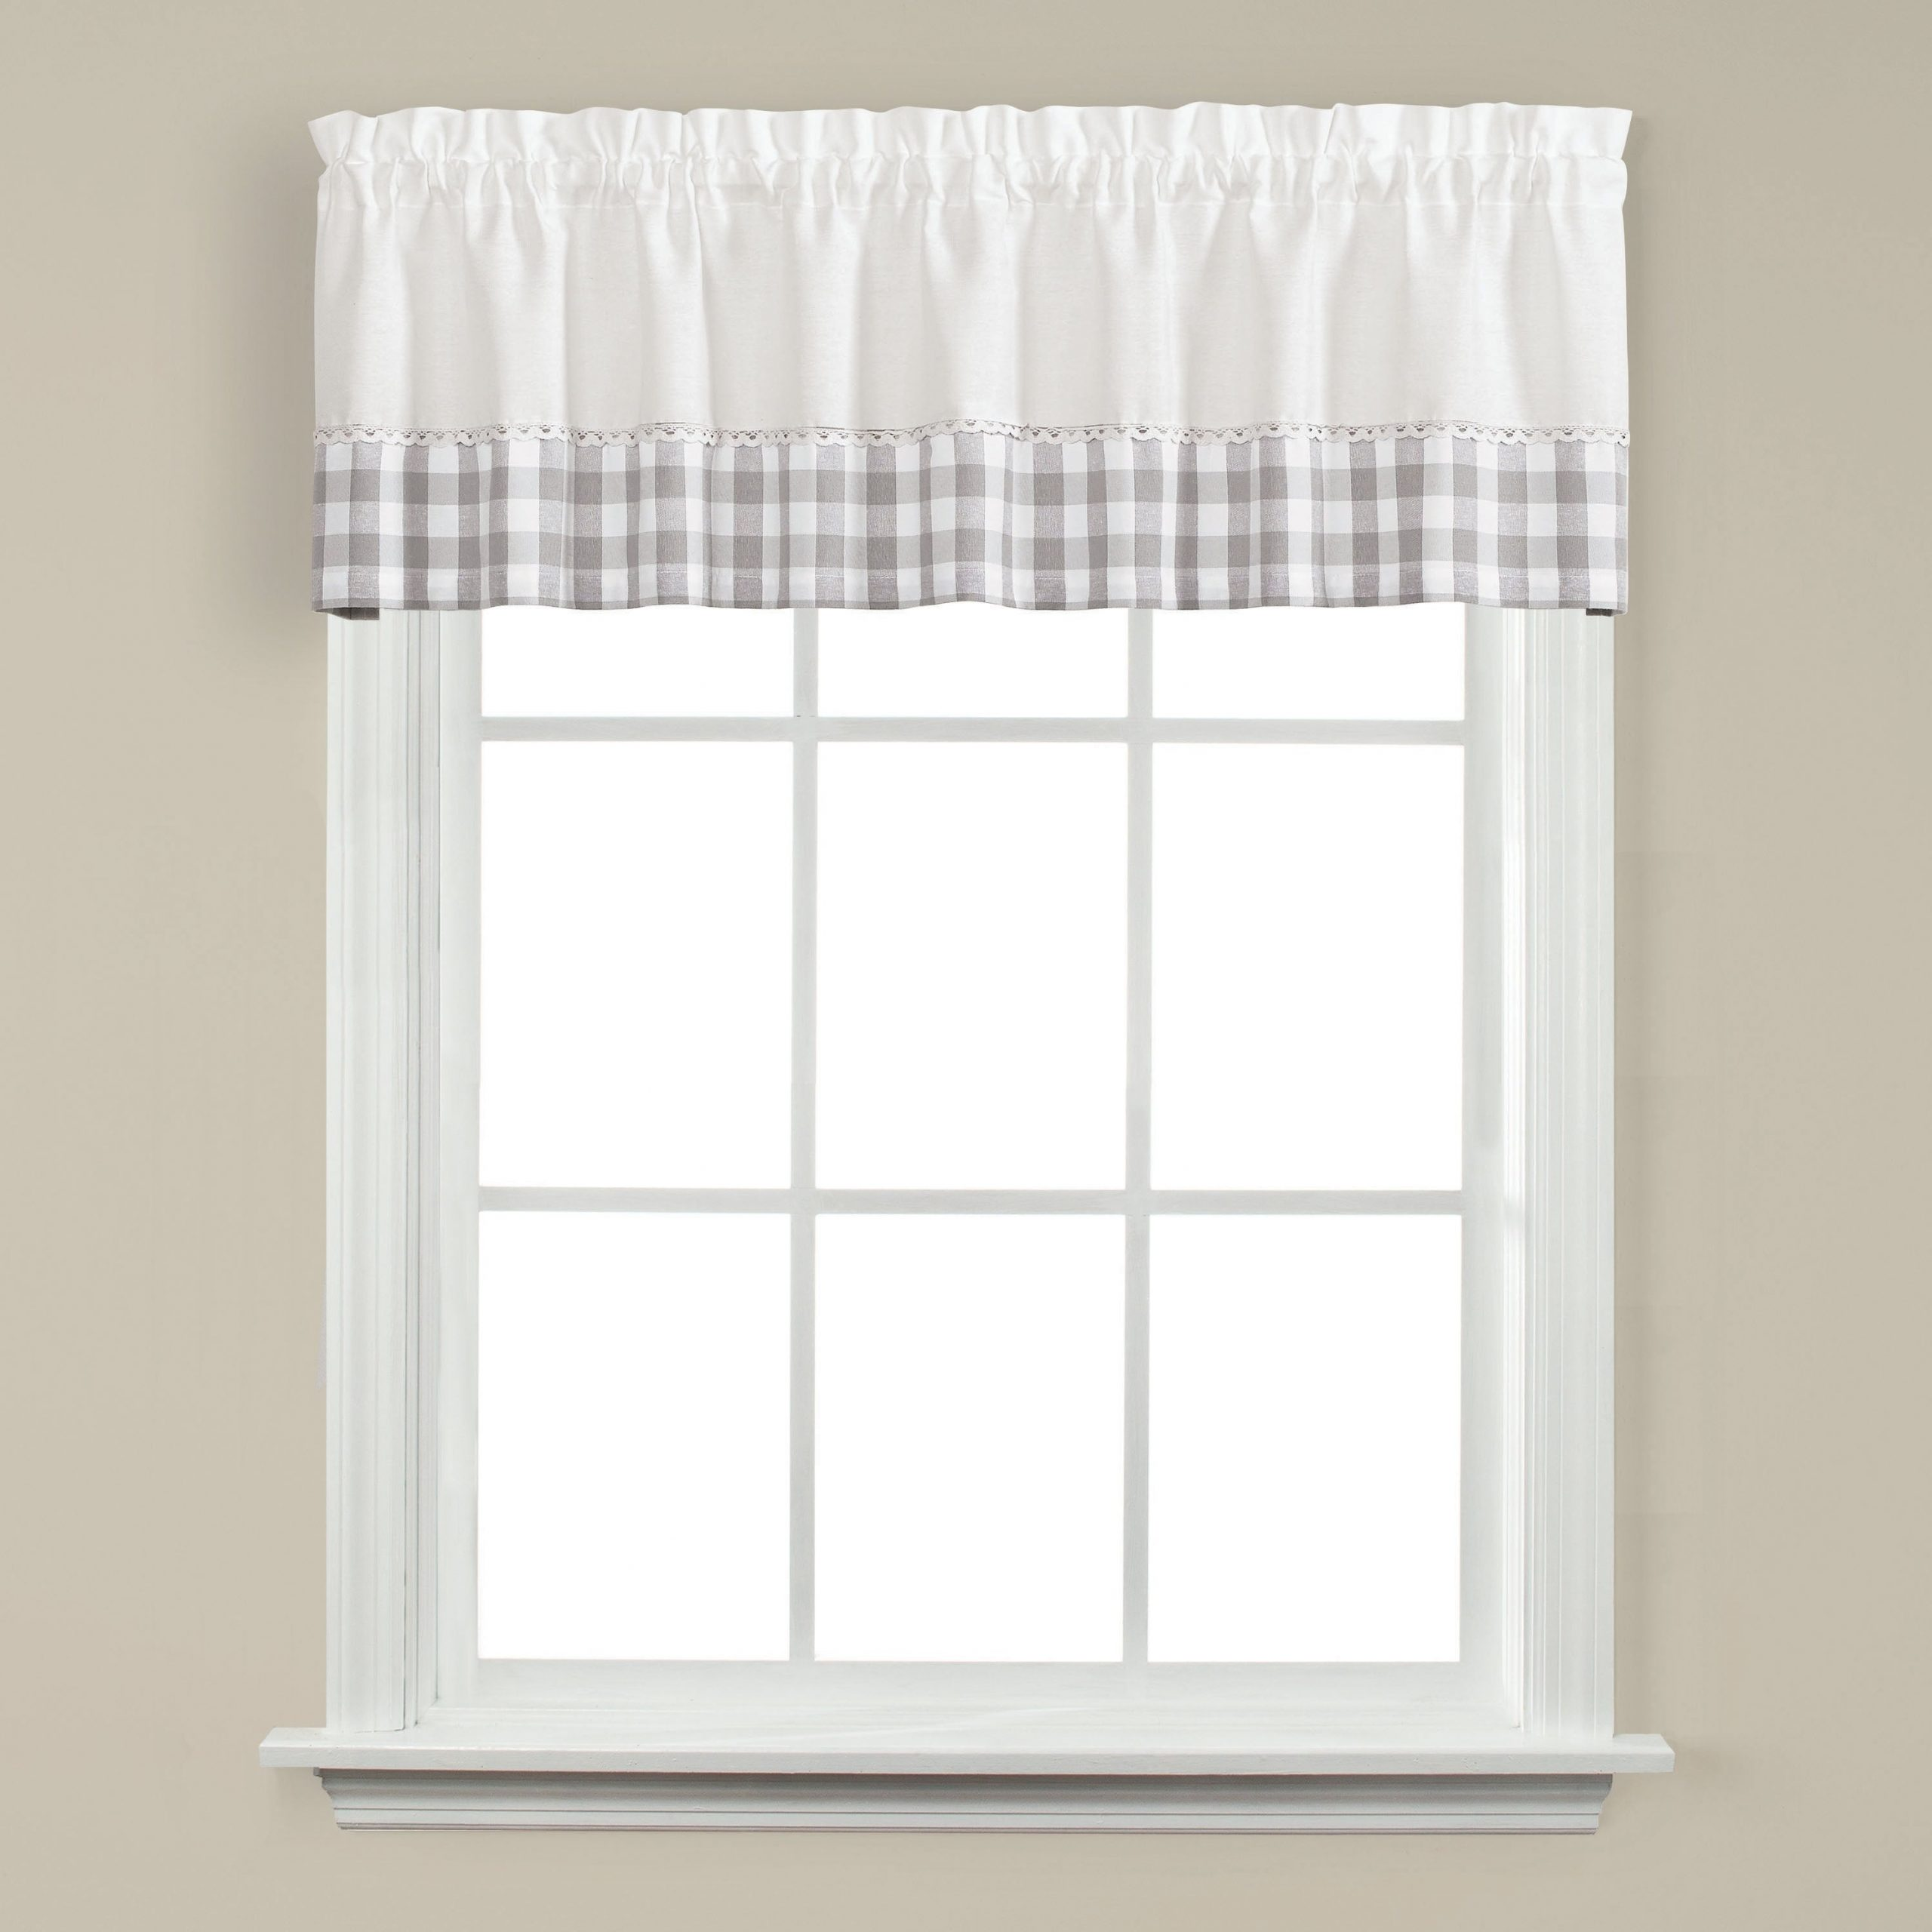 Skl Home Cumberland 13 Inch Valance In Dove Gray Inside Cumberland Tier Pairs In Dove Gray (View 11 of 20)